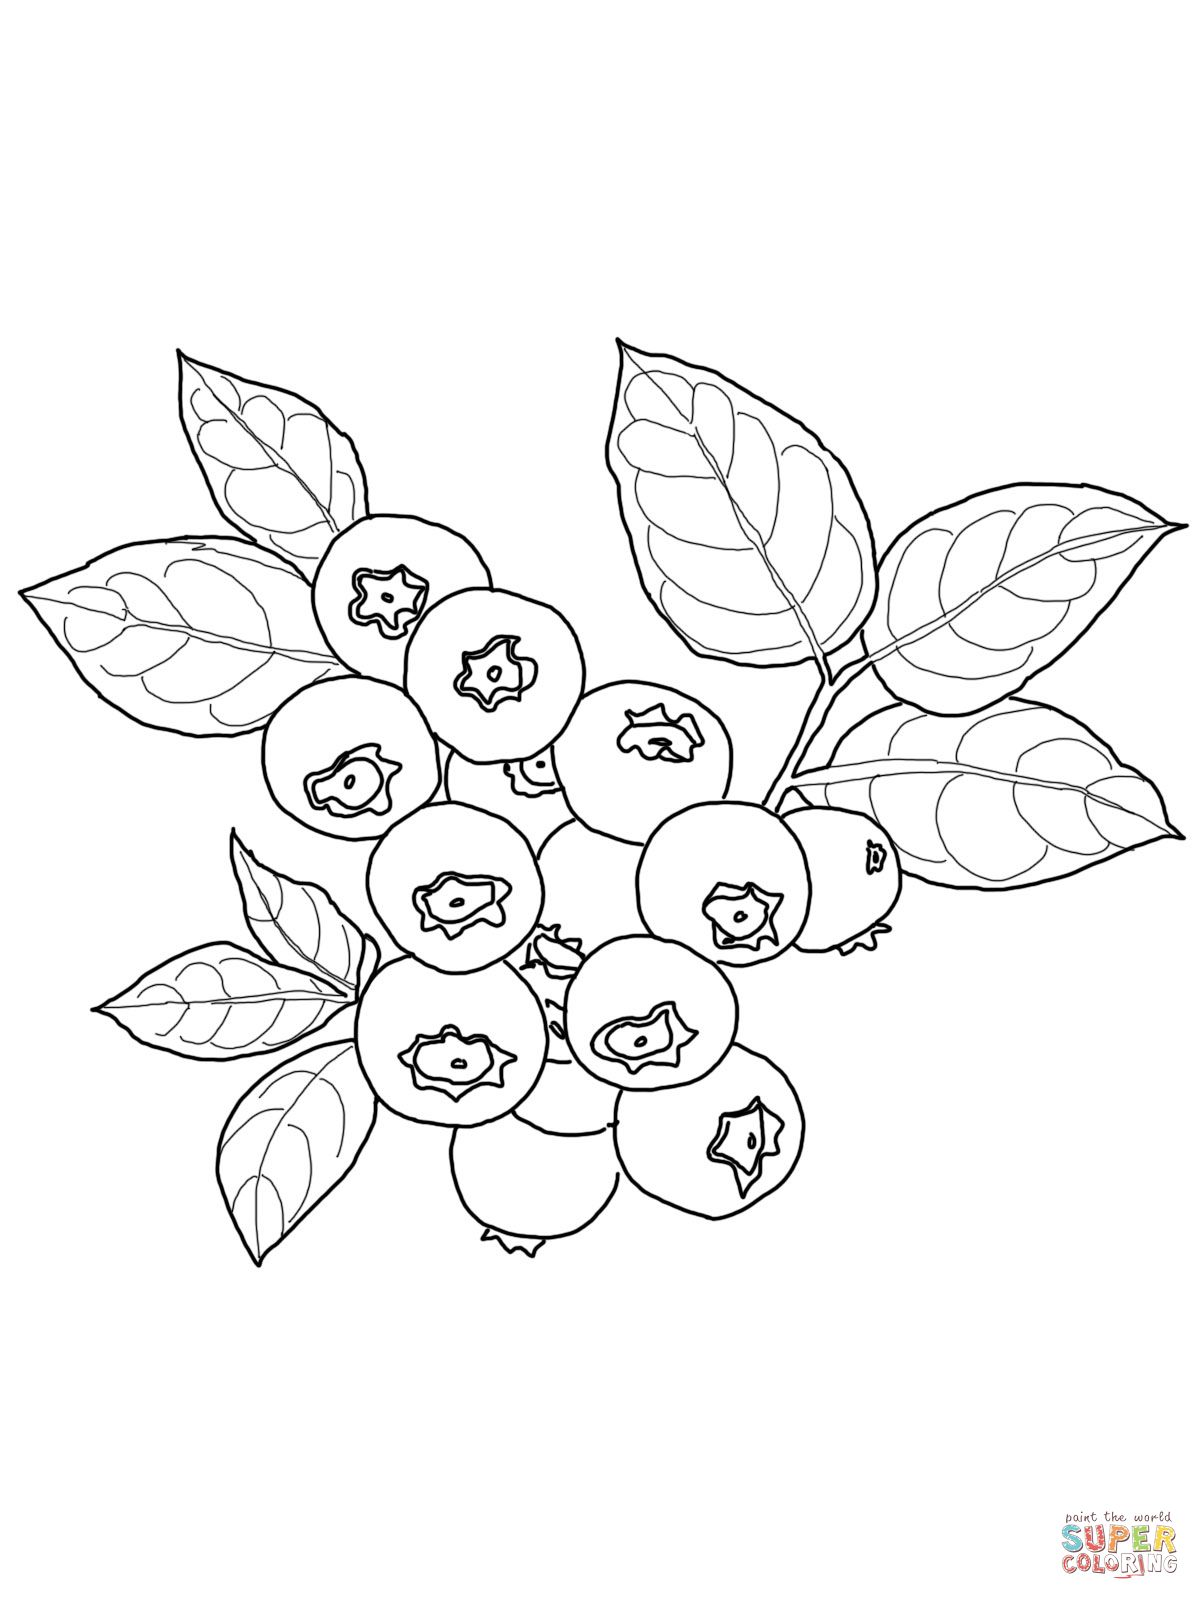 Blueberry coloring page SuperColoring